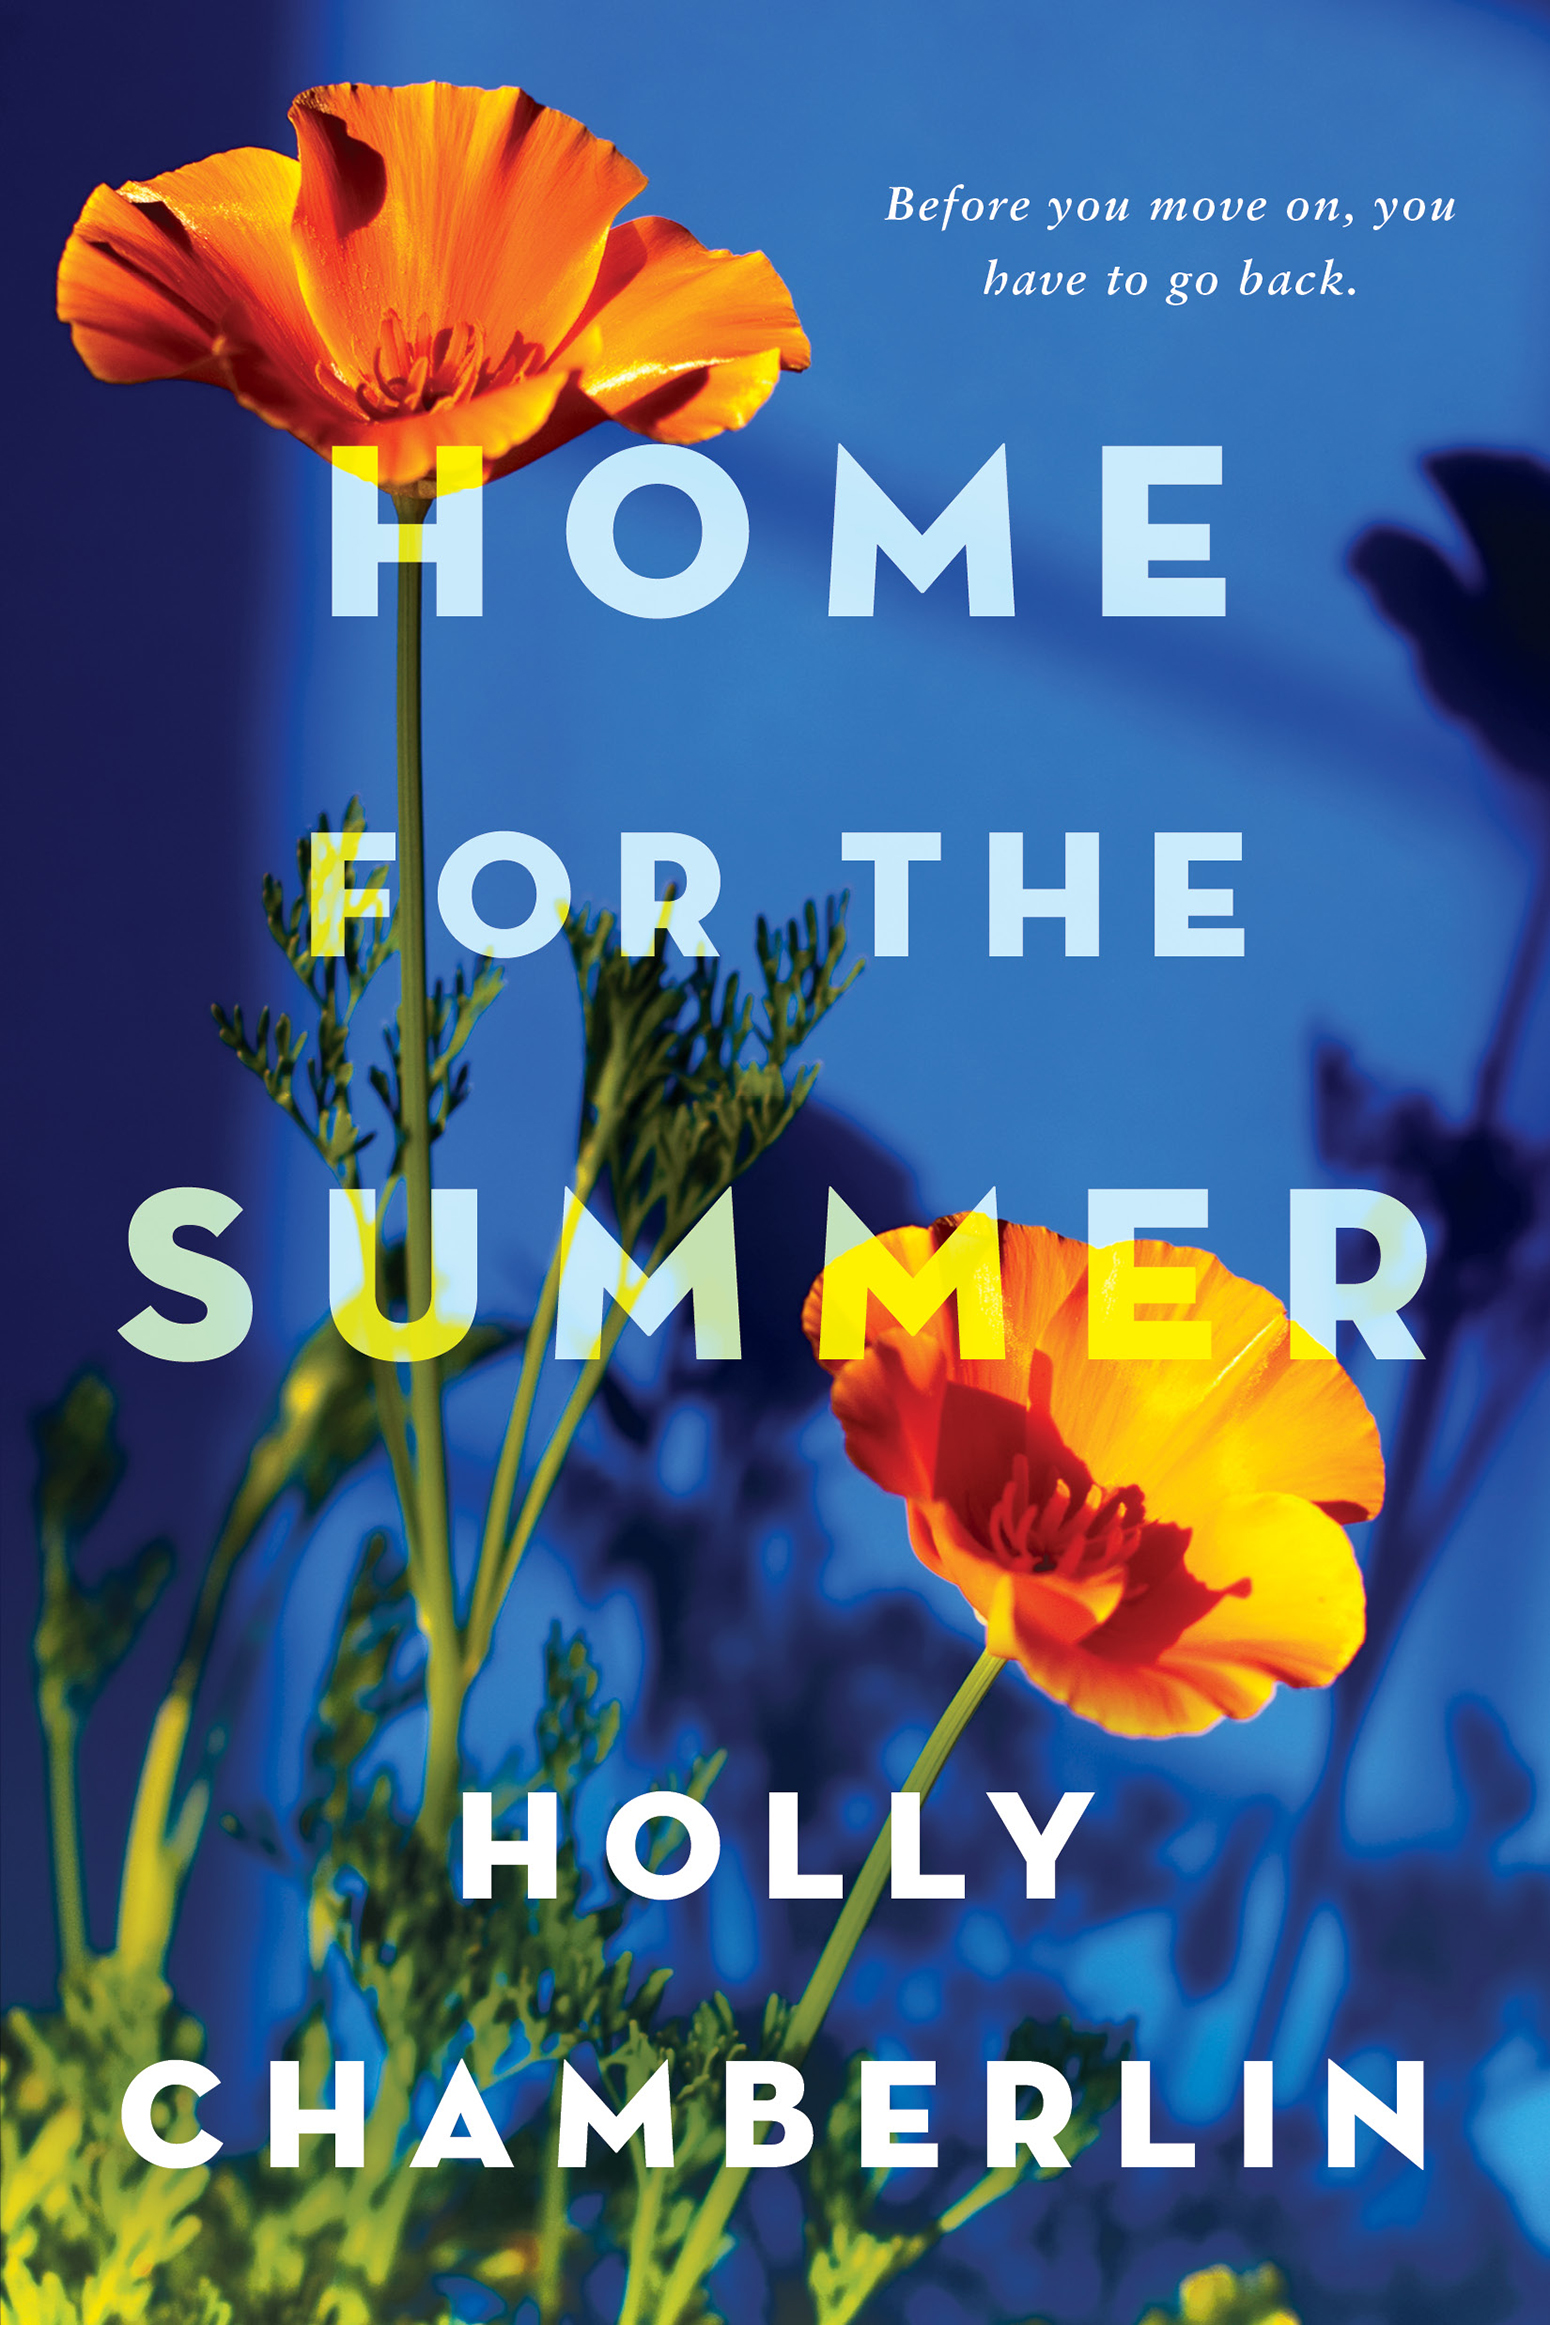 Home for the summer cover image